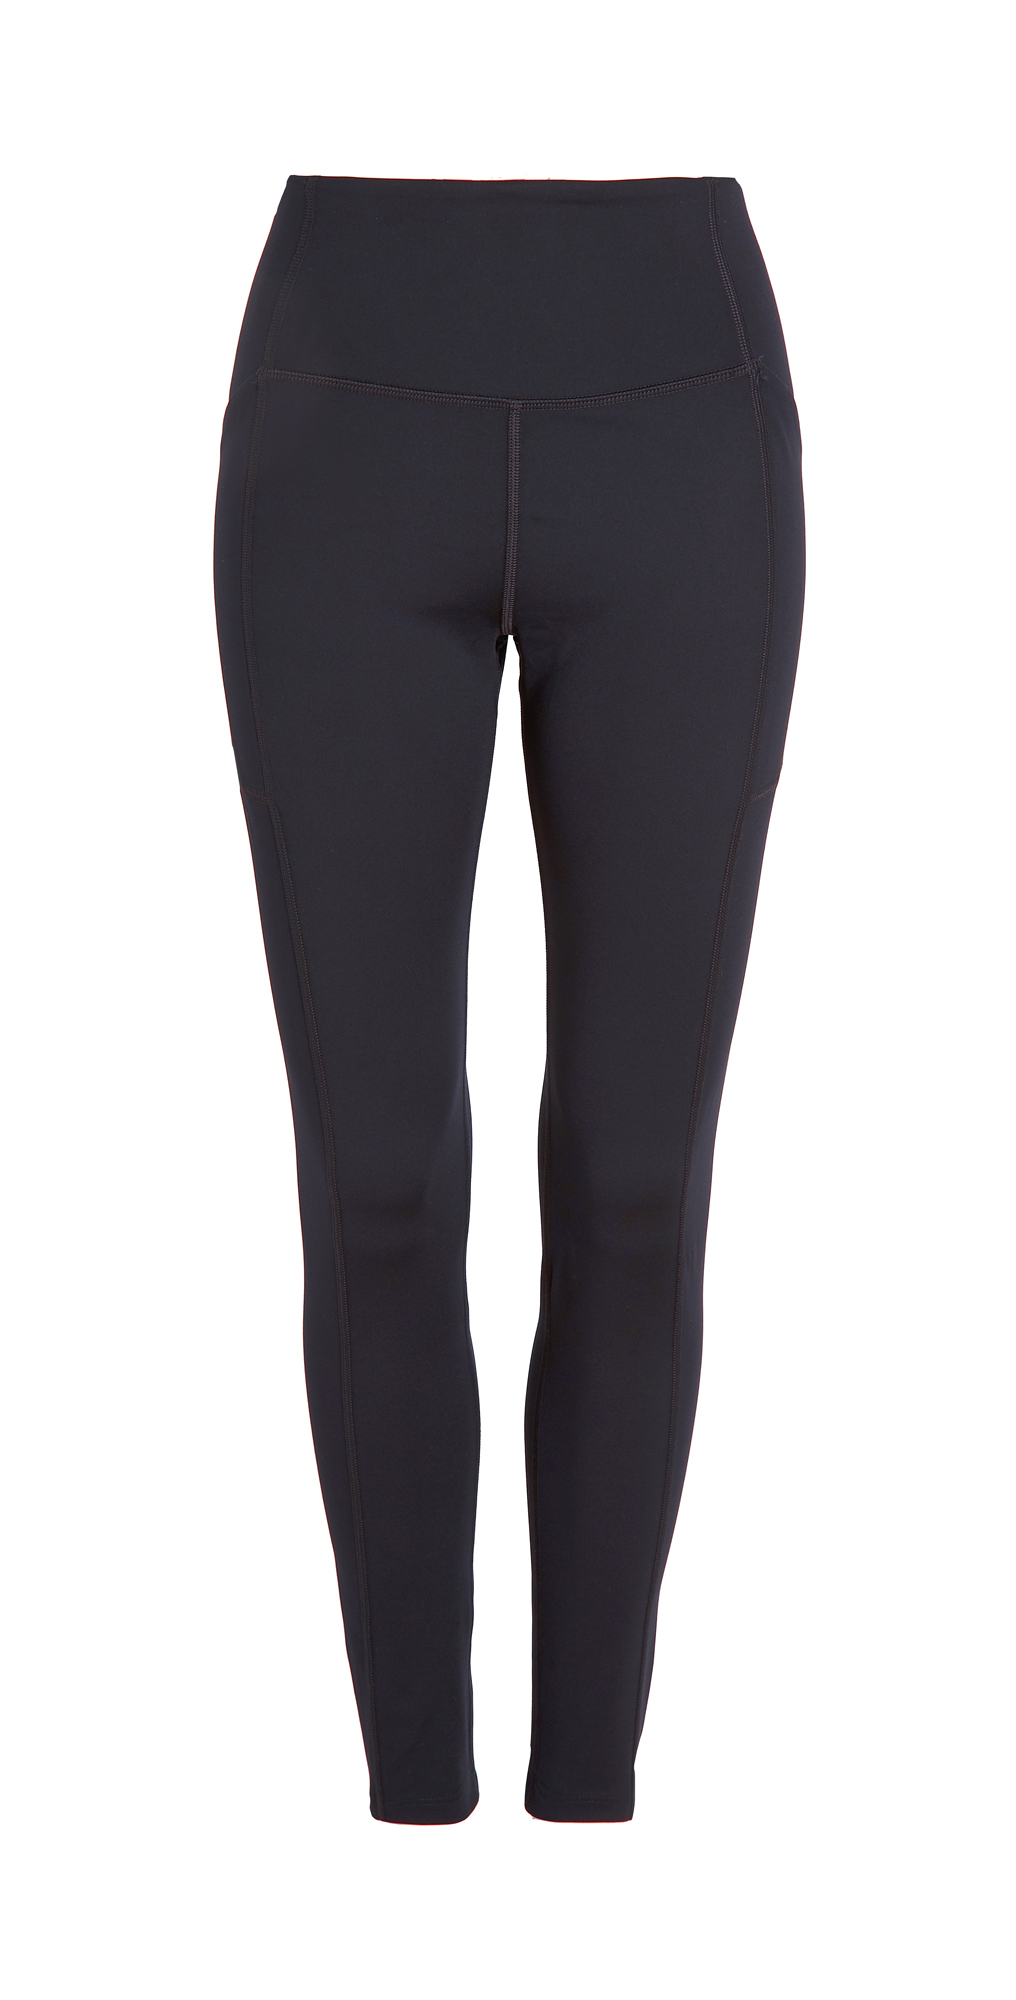 Girlfriend Collective Pocket Leggings